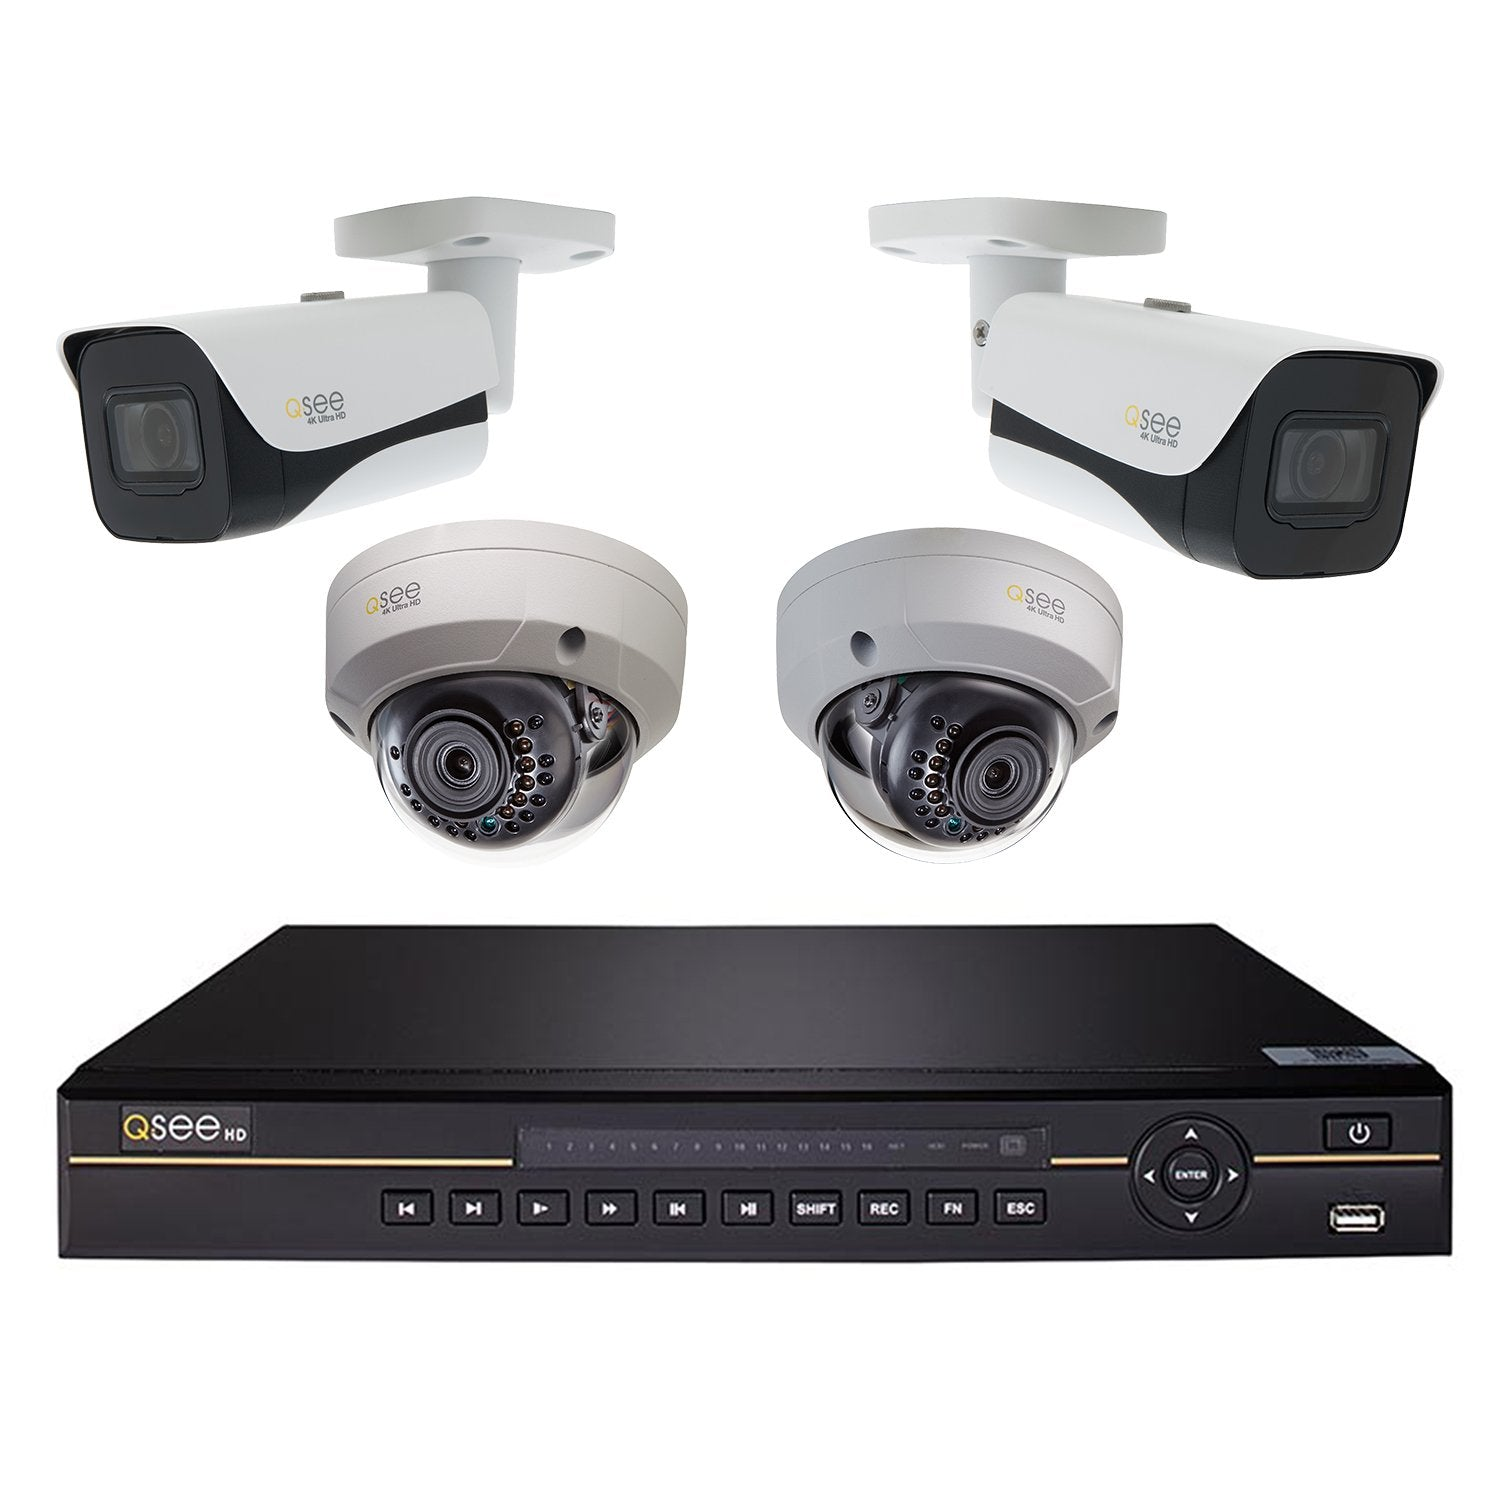 8 Channel 4K IP HD Network Video Recorder with 2TB Hard Drive, (2) 4K IP Bullet Cameras and (2) 4K IP Dome Cameras (QCK81-4HG-2) IP HD KIT  - Q-See